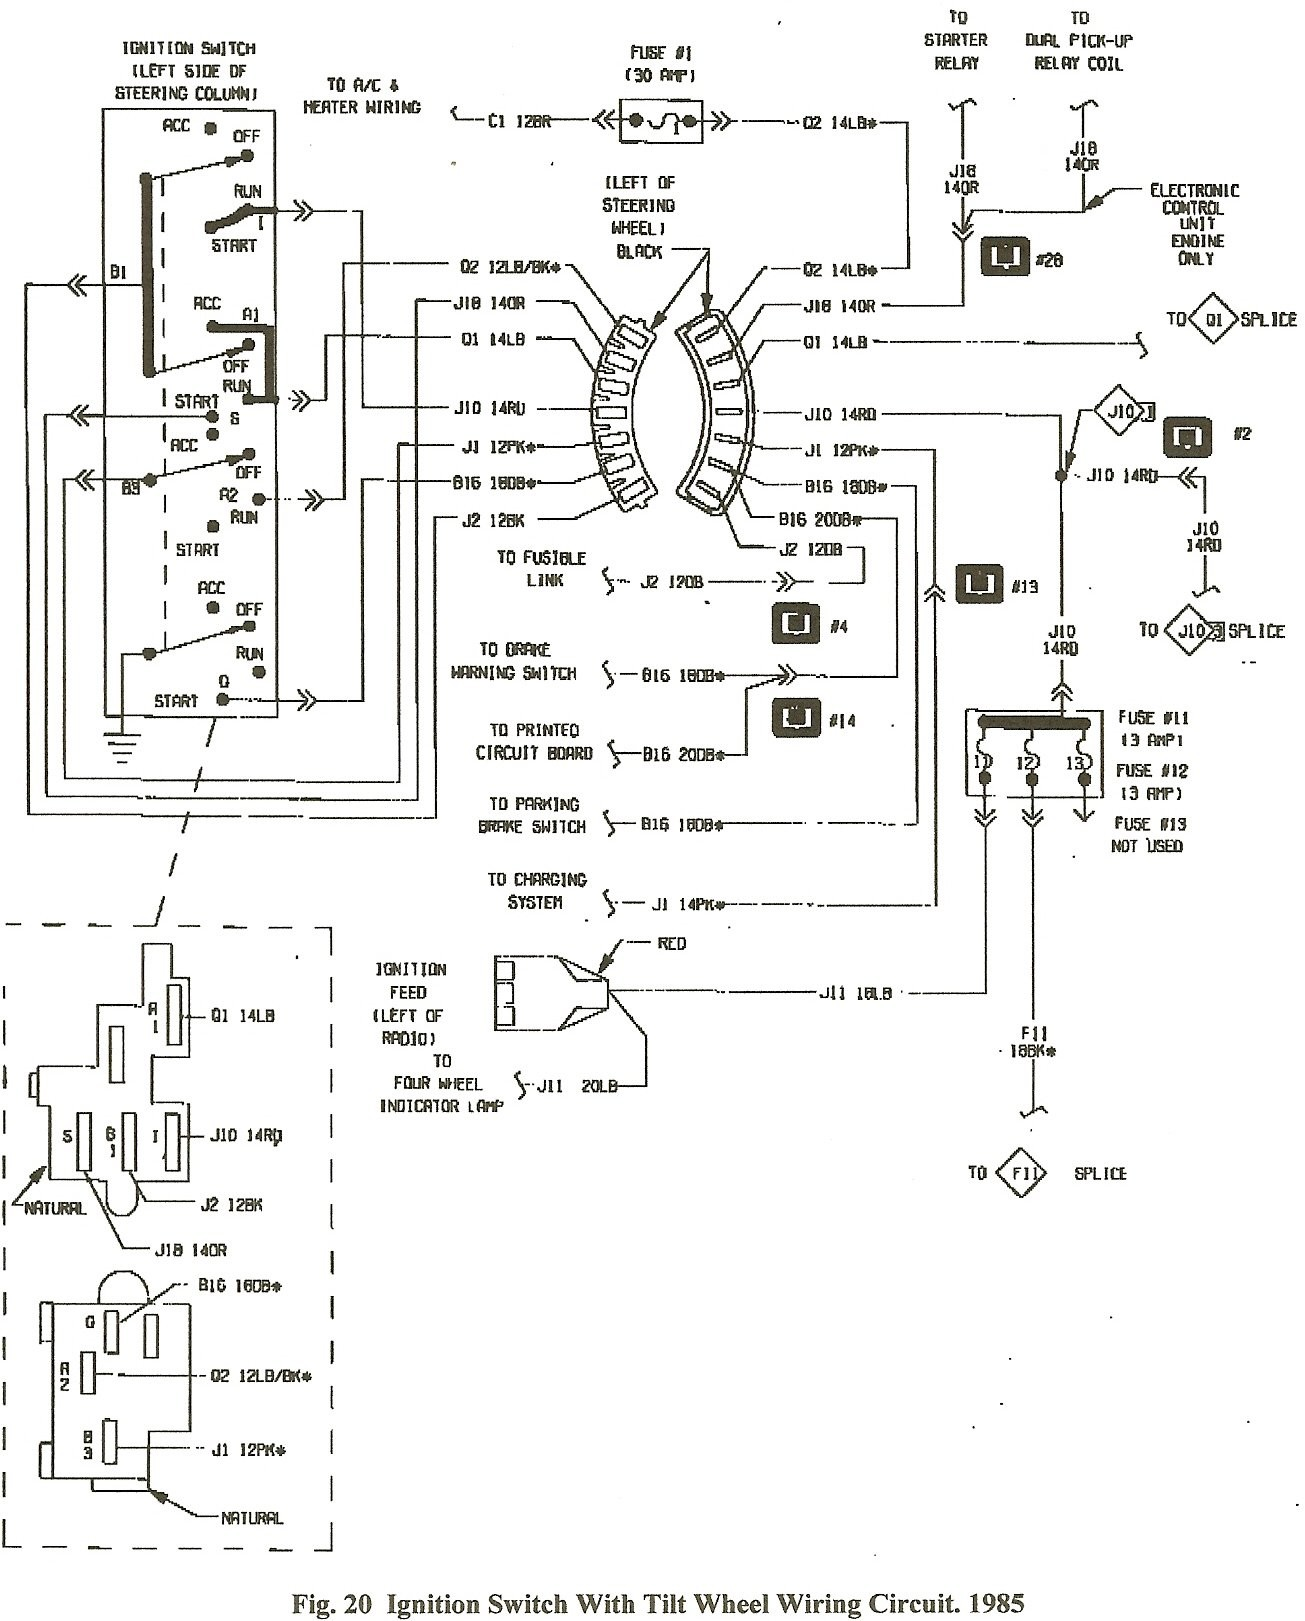 1984 dodge truck wiring harness wiring diagrams rh 2 iukas xolabs de  1984 dodge ram ignition wiring diagram